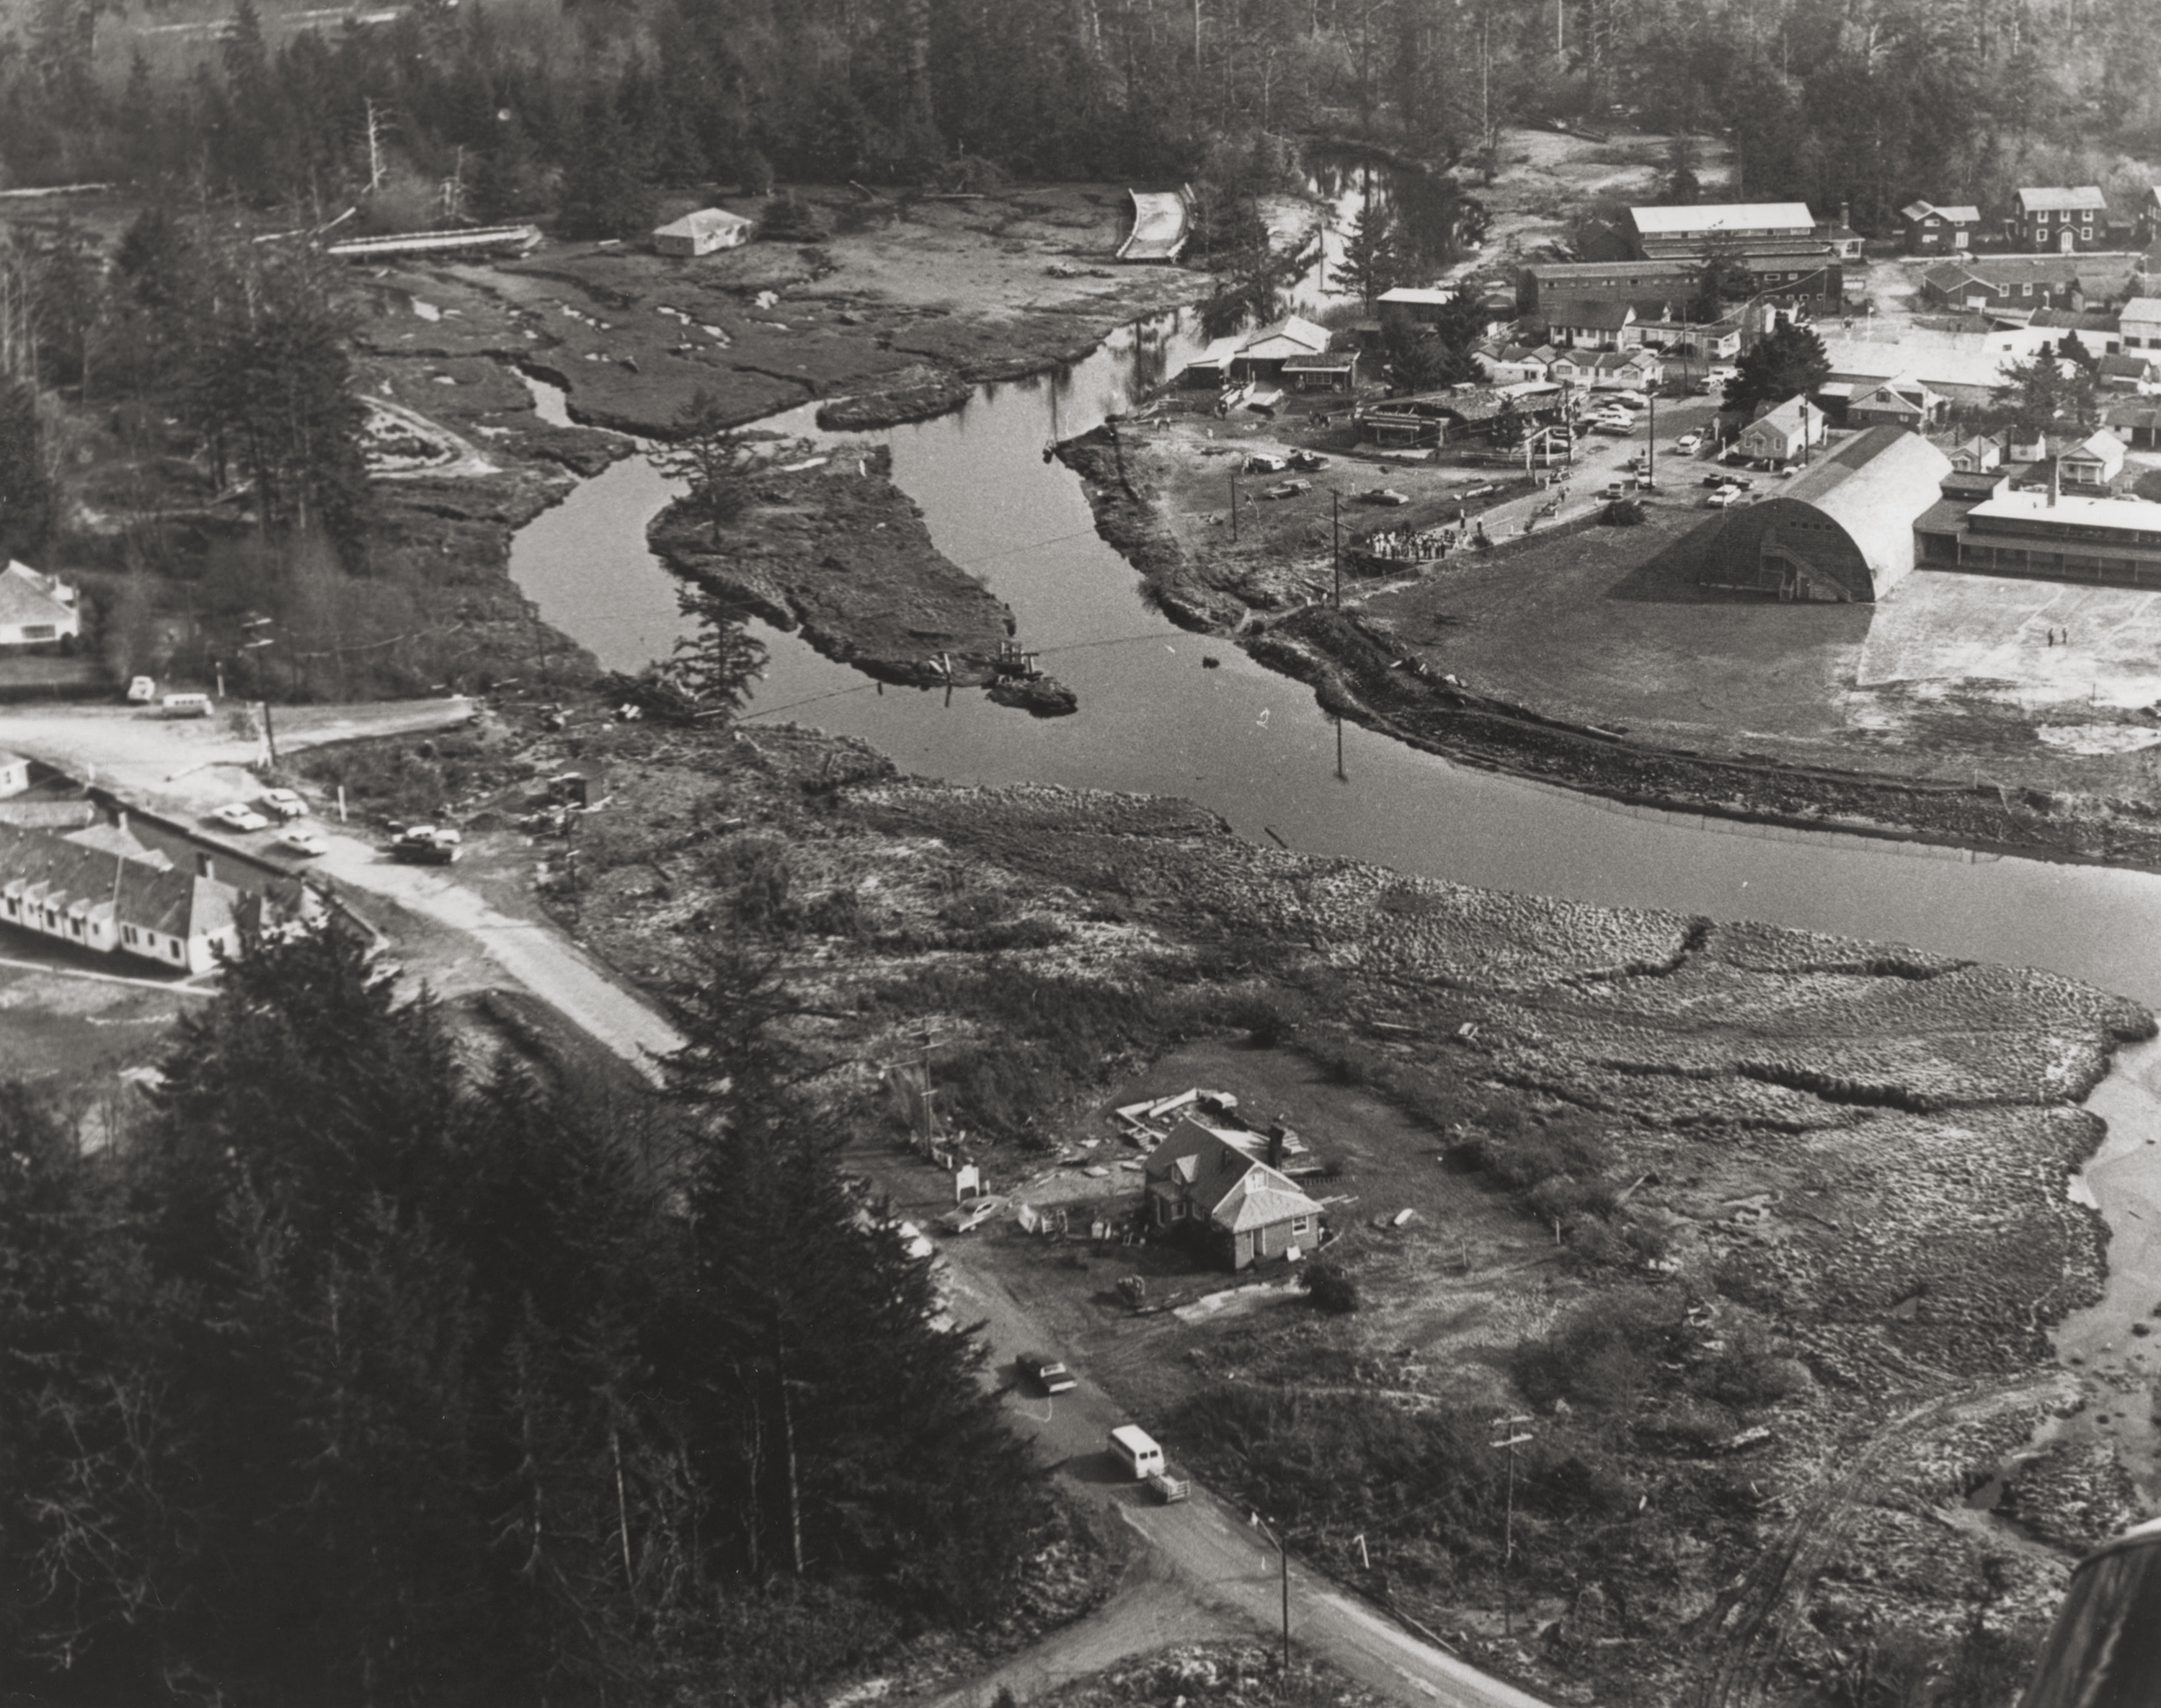 Tsunami damage from the 1964 Good Friday Quake. Note the pieces of bridge and the small white house in the background.